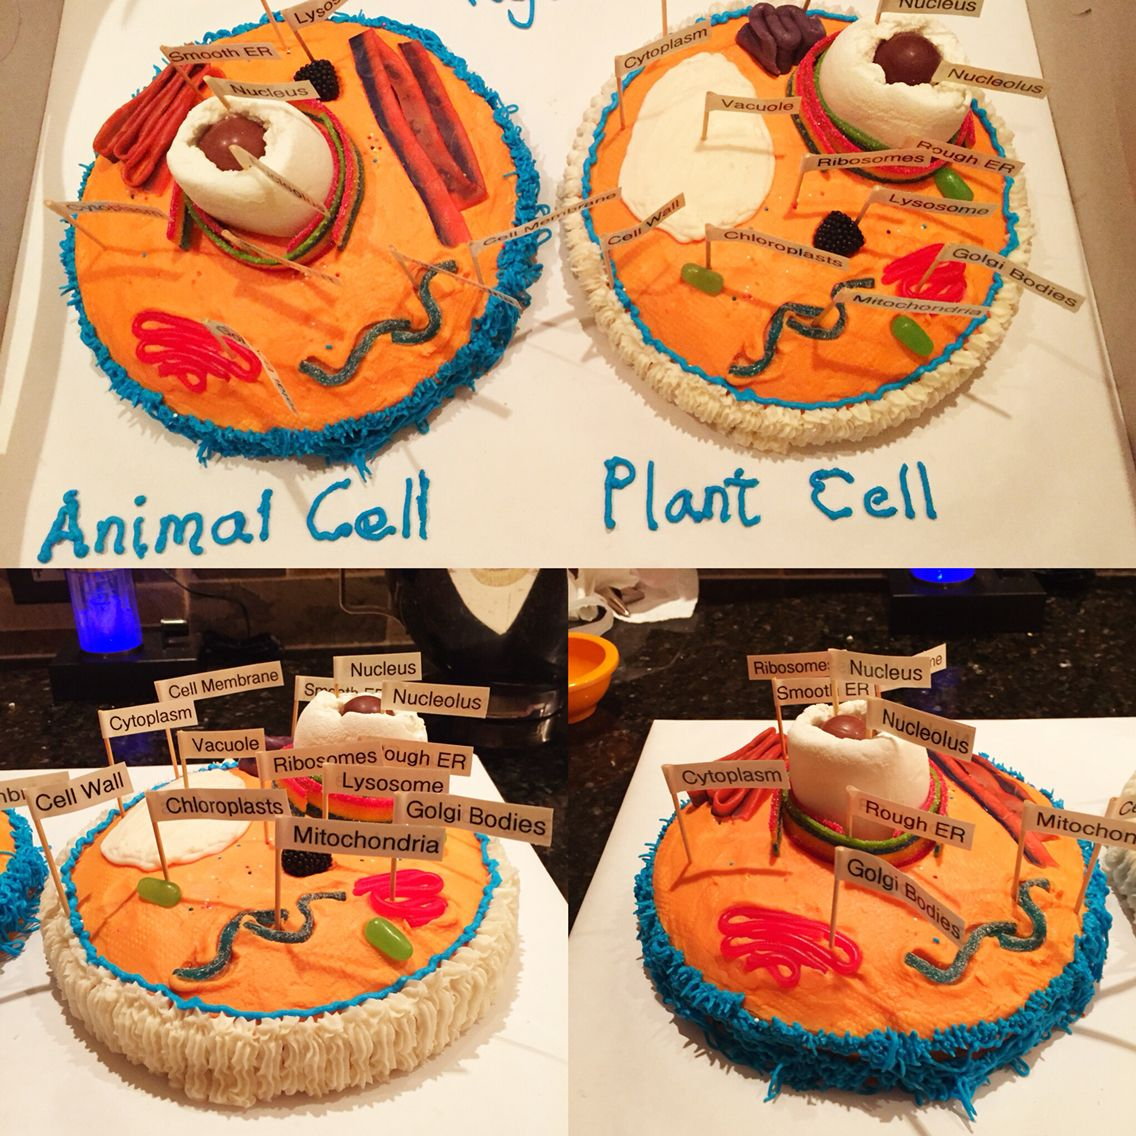 Plant Cell and Animal Cell Model (Cake & Candy) Cells